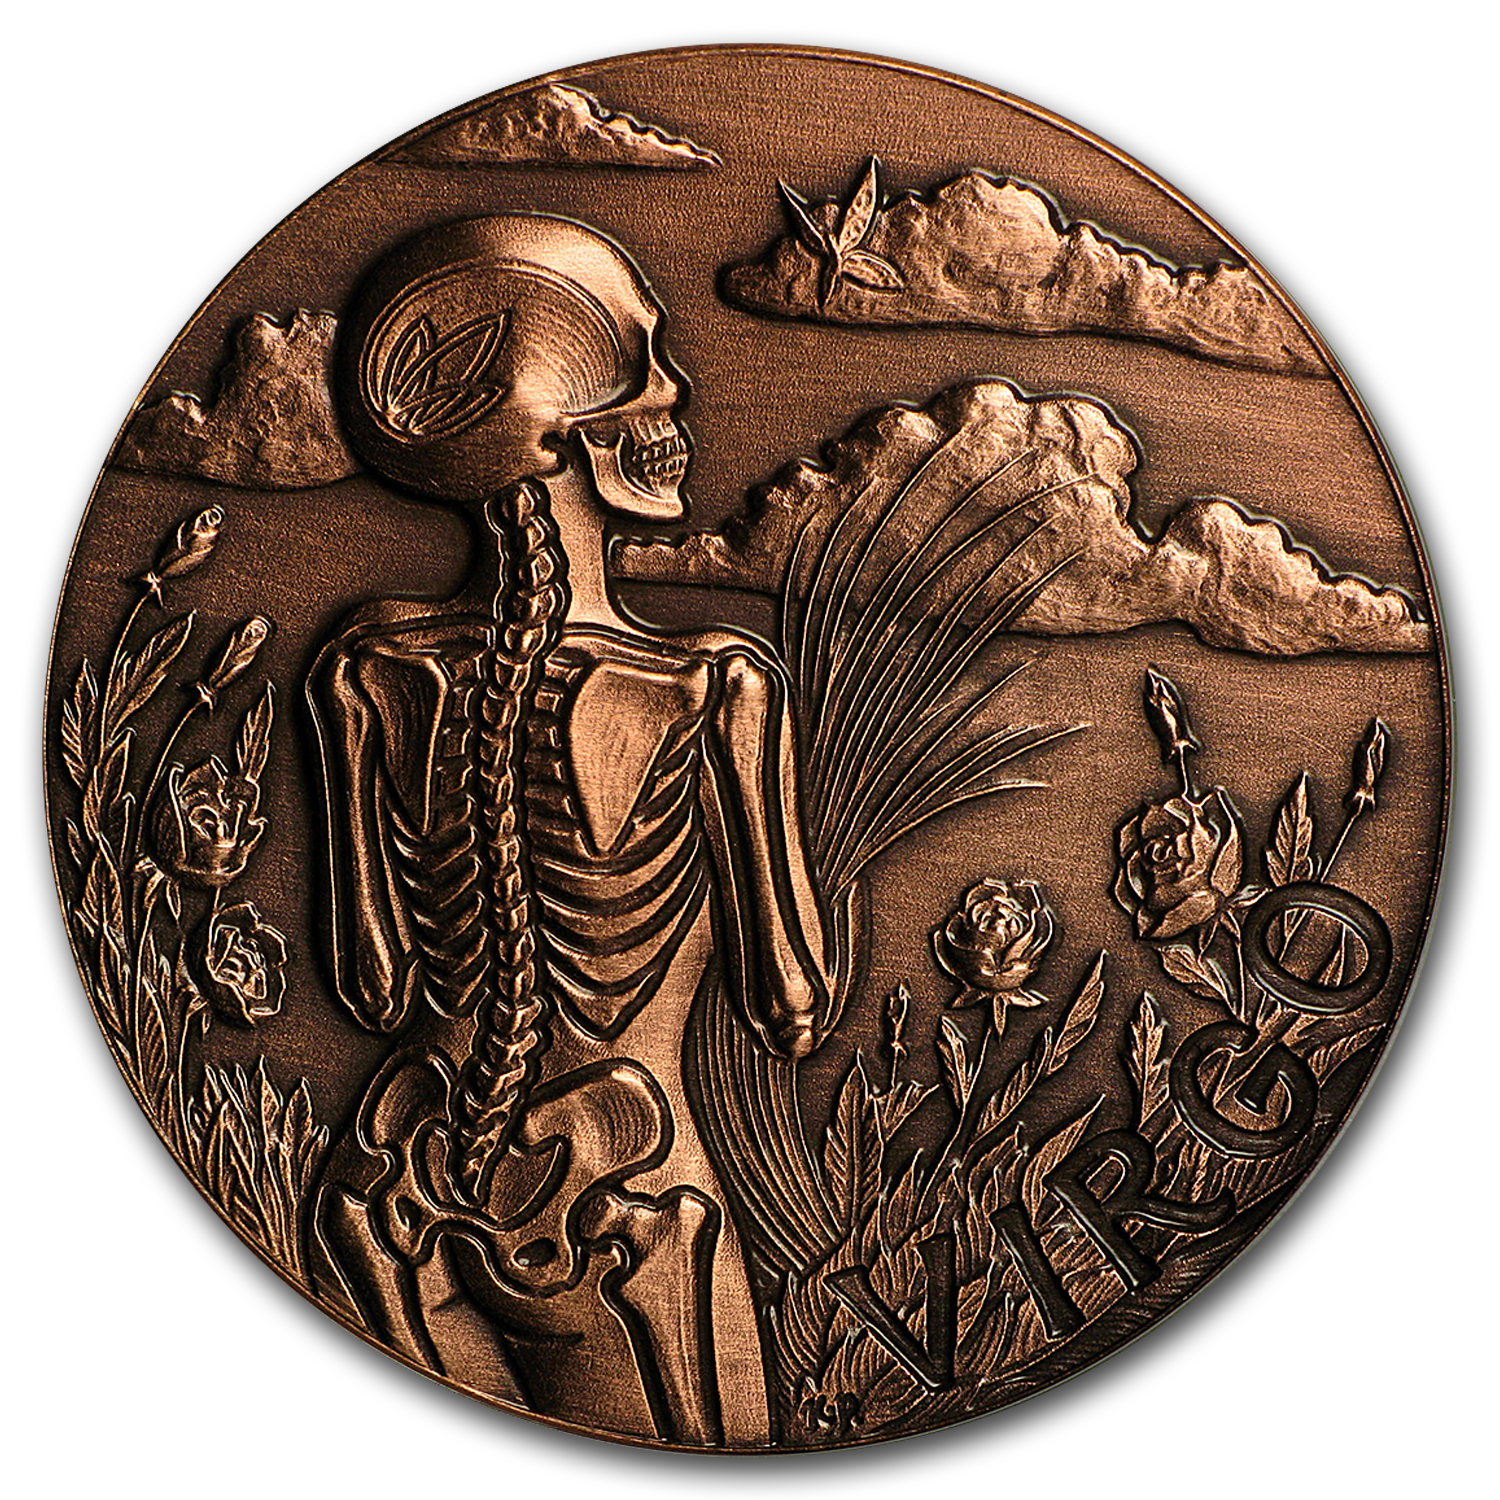 1 oz Copper Round - Zodiac Skull Series (Virgo)